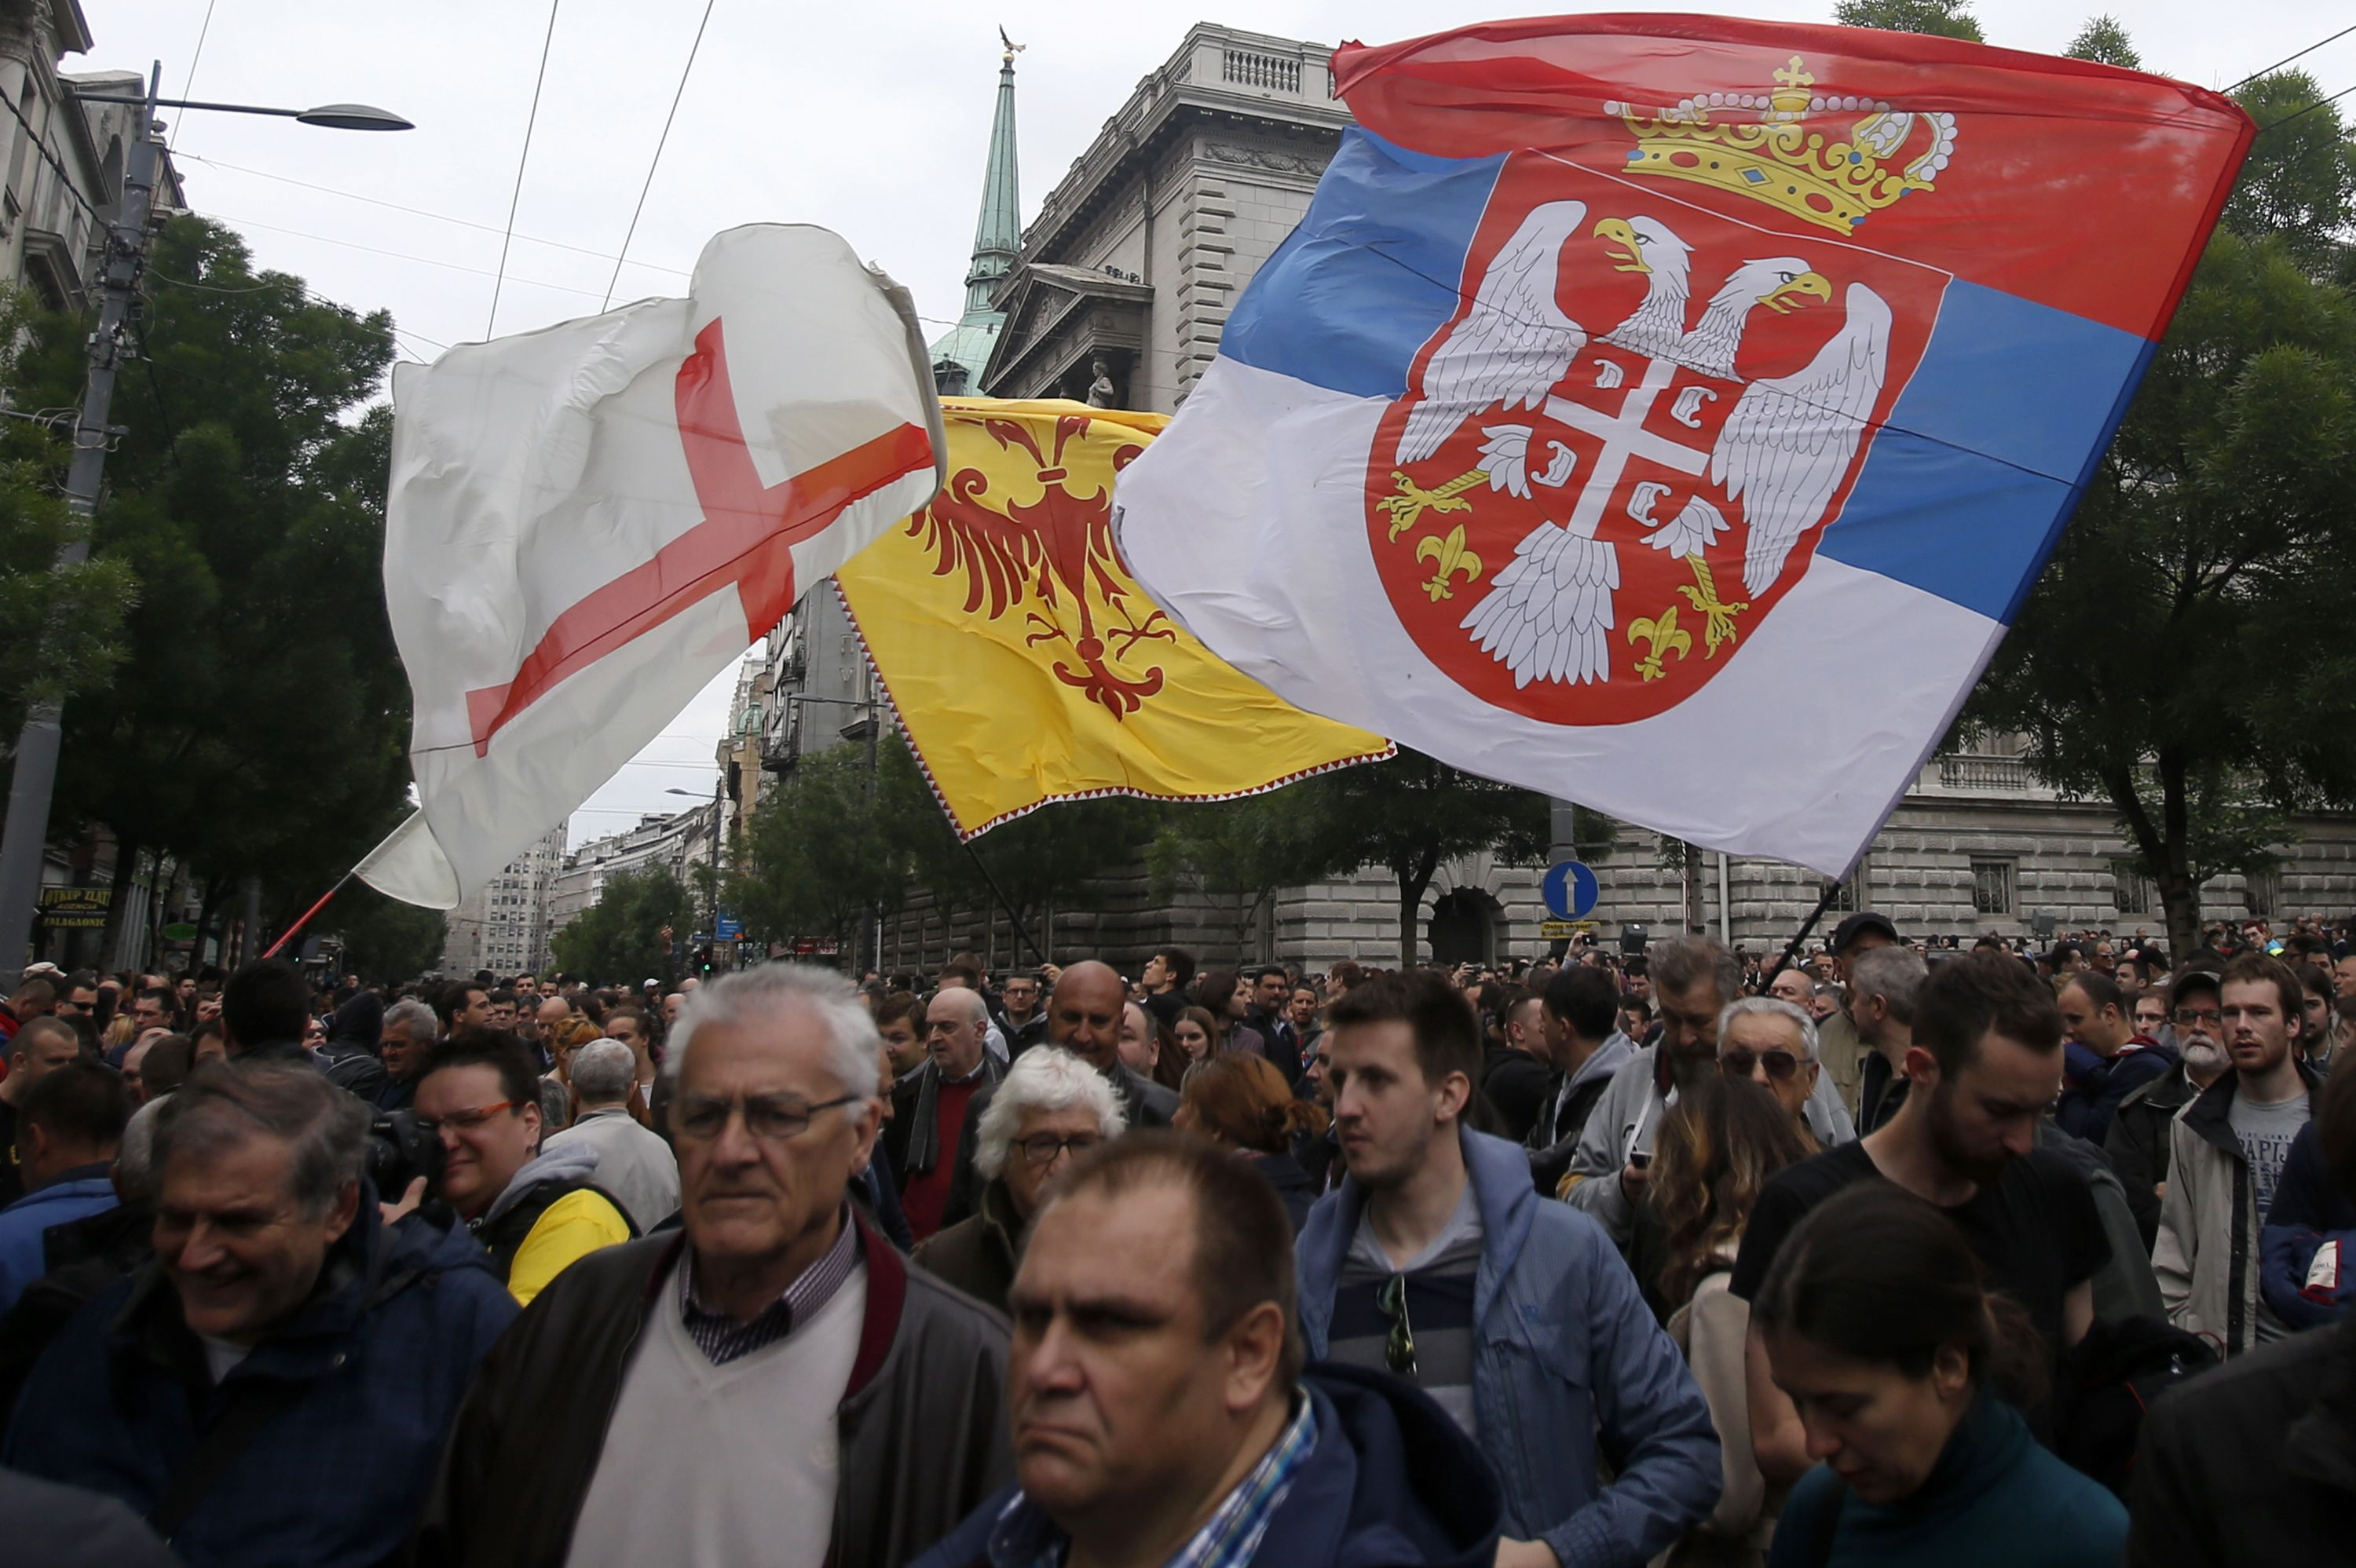 Opposition supporters wave flags during an opposition protest in Belgrade, Serbia